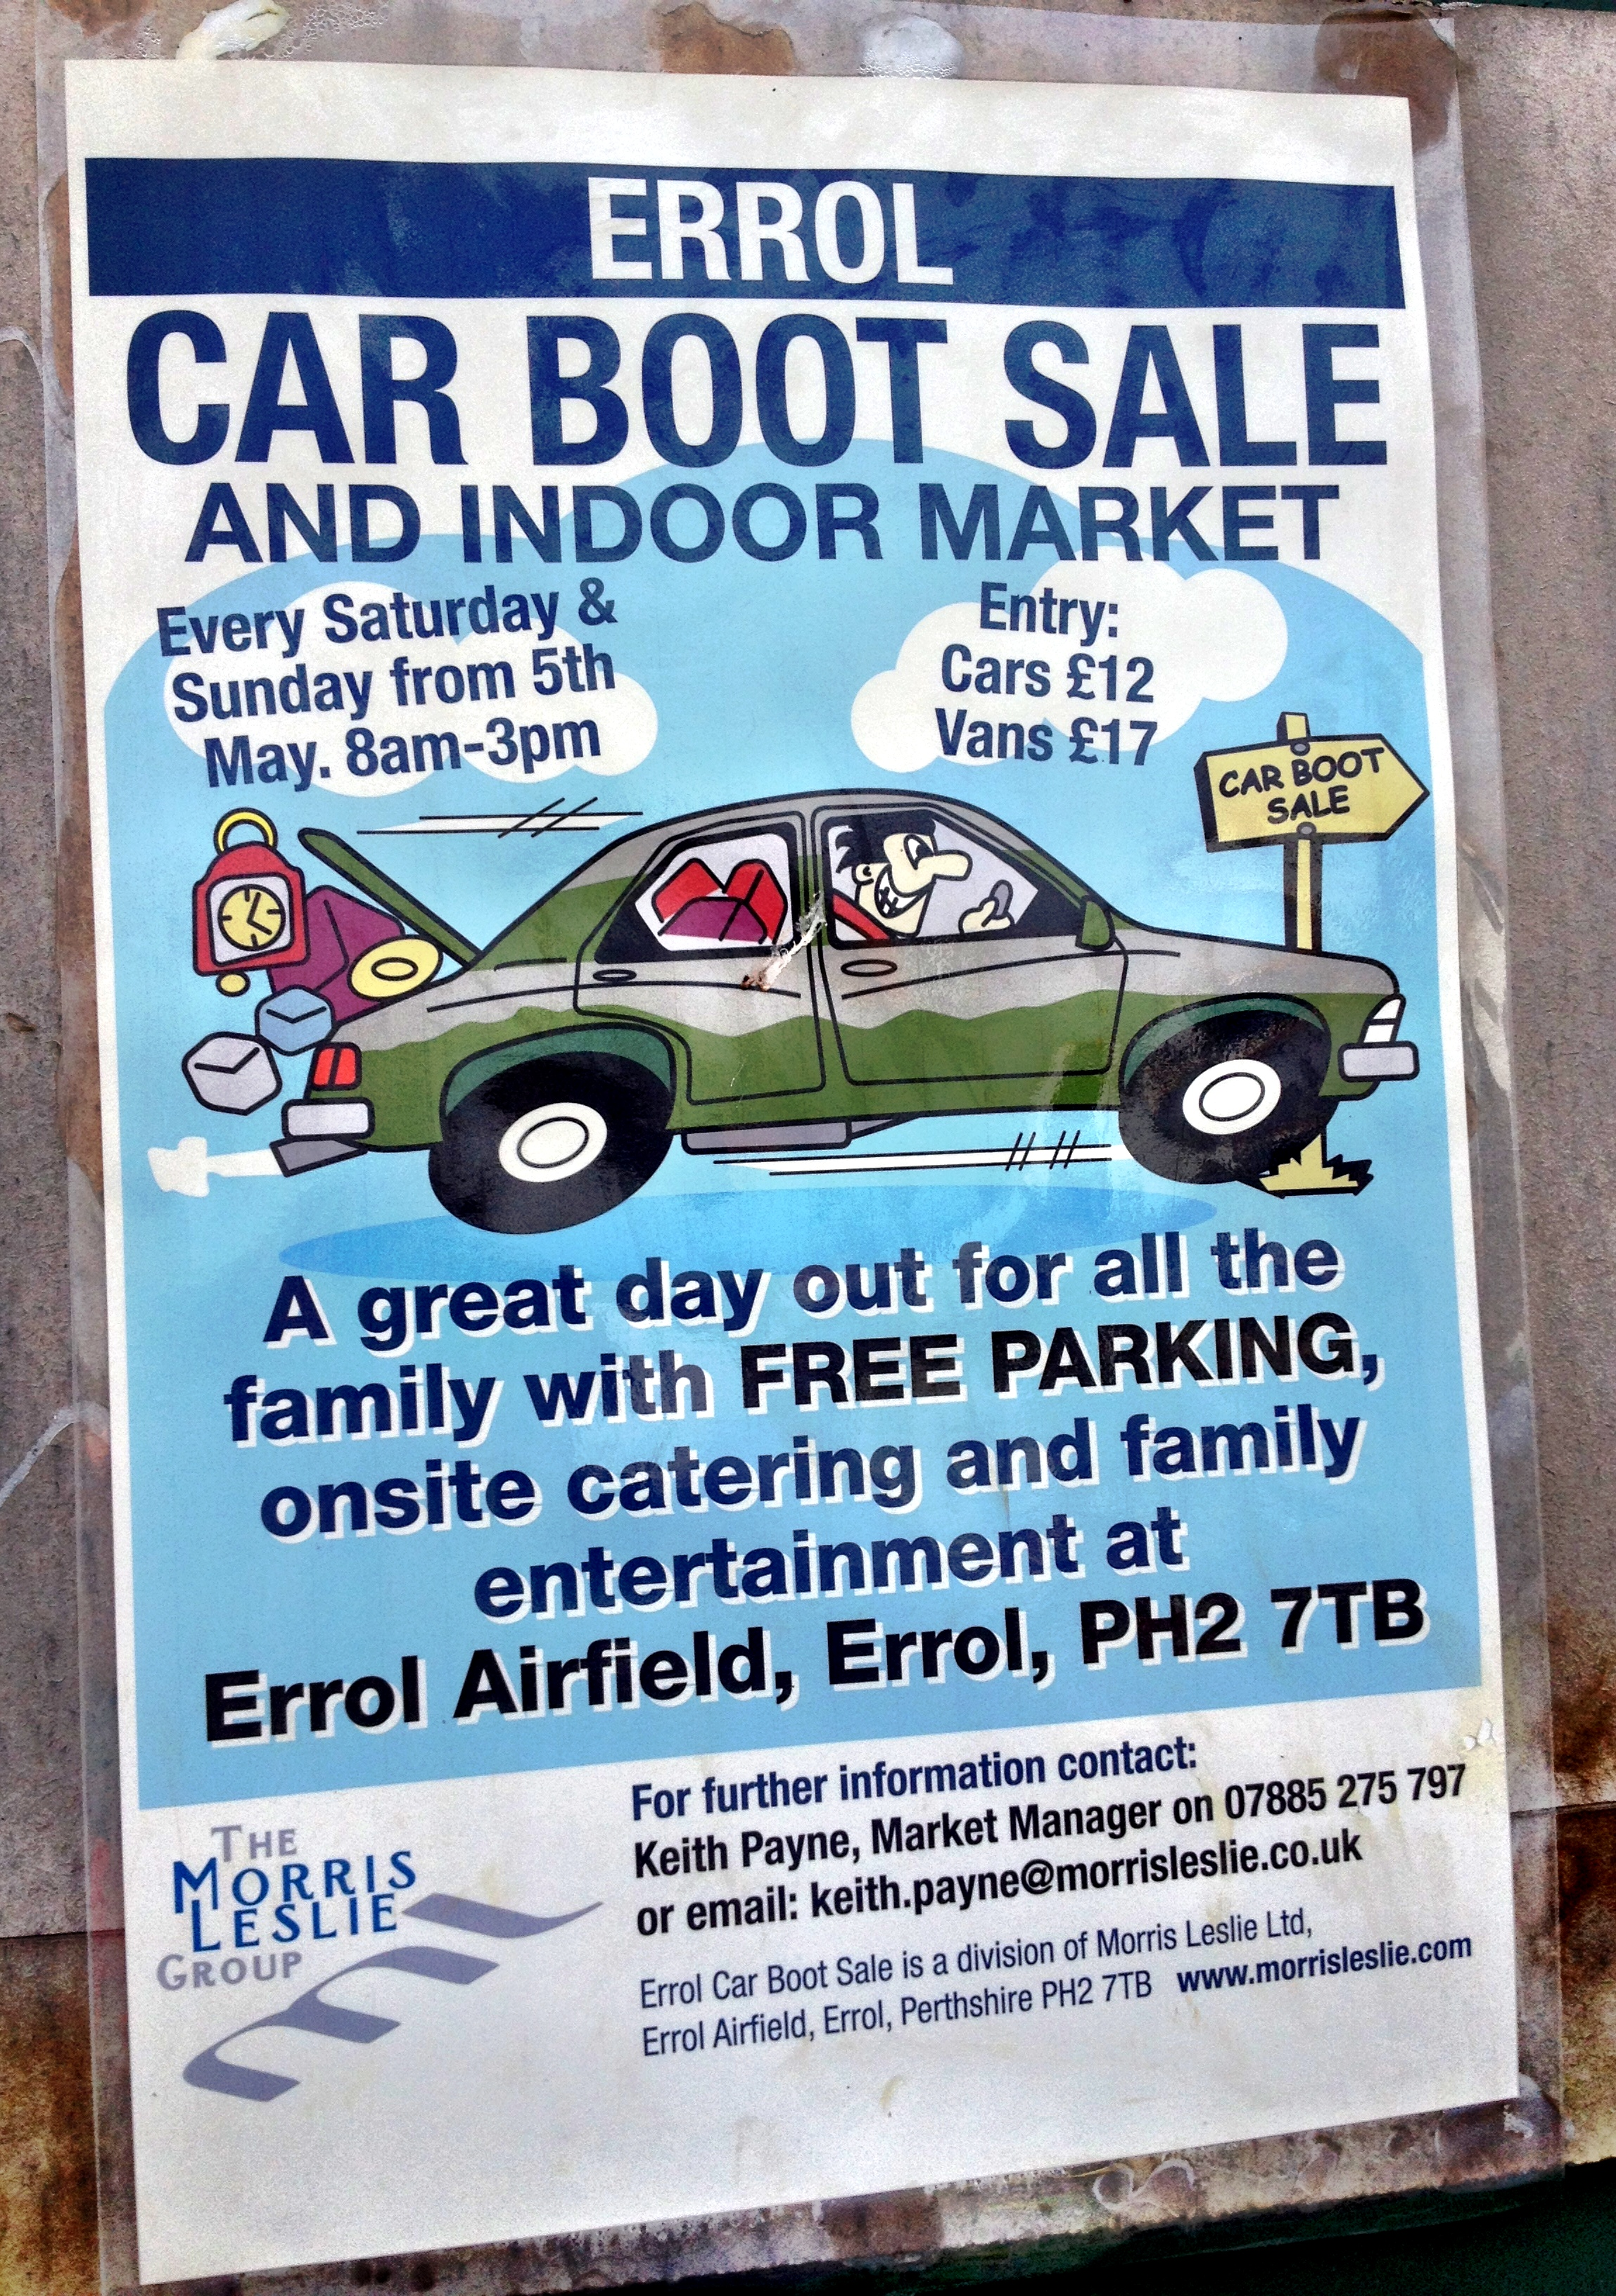 Errol car boot and indoor market – my new favourite place? | Purse ...